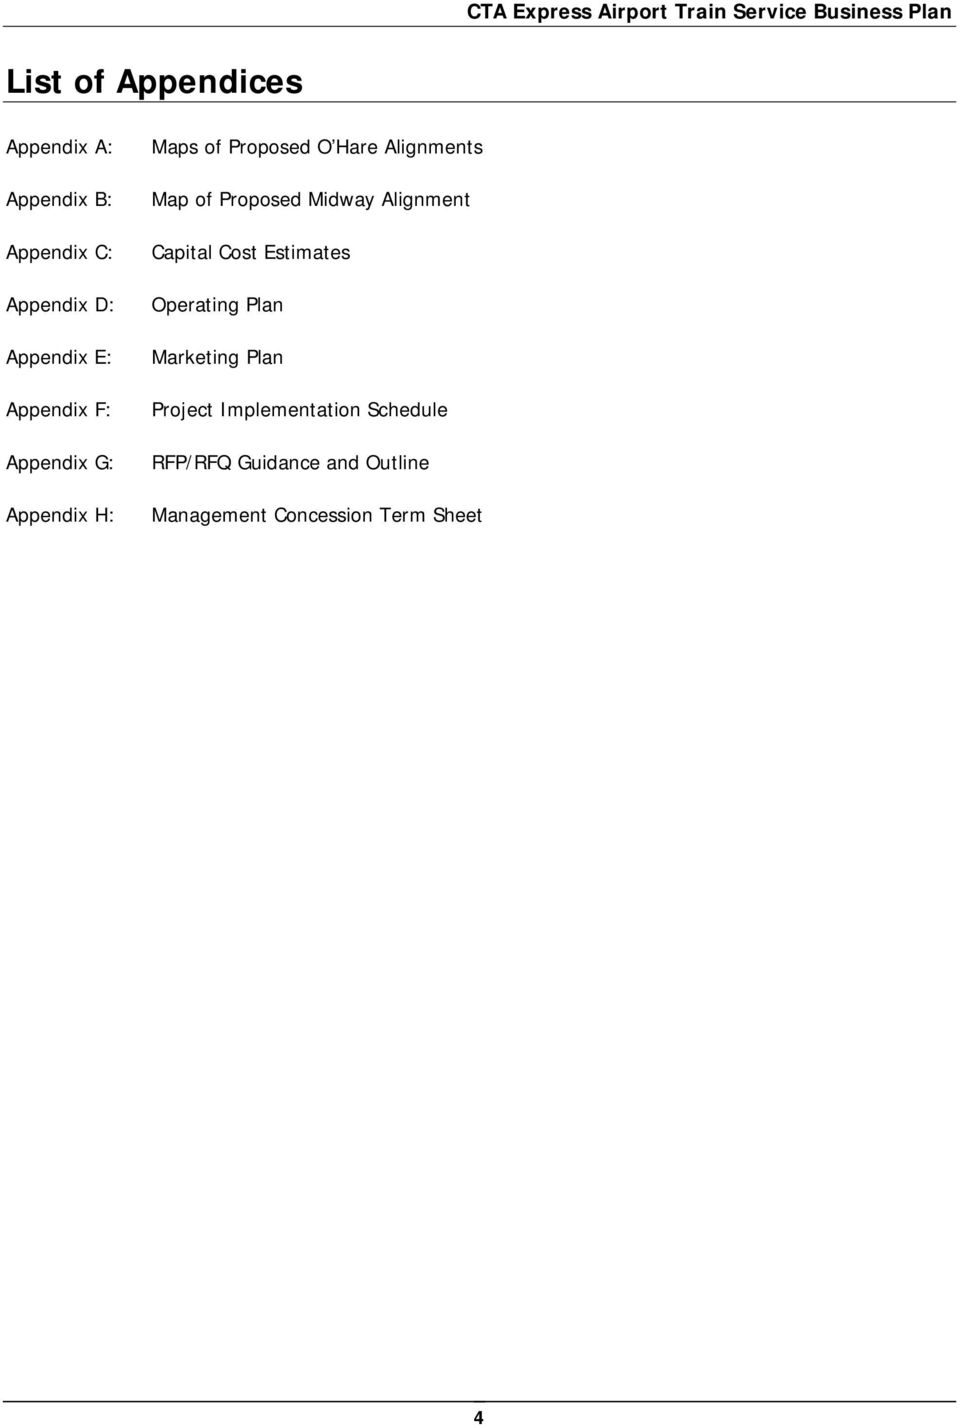 Table of Contents  CTA Express Airport Train Service Business Plan - PDF